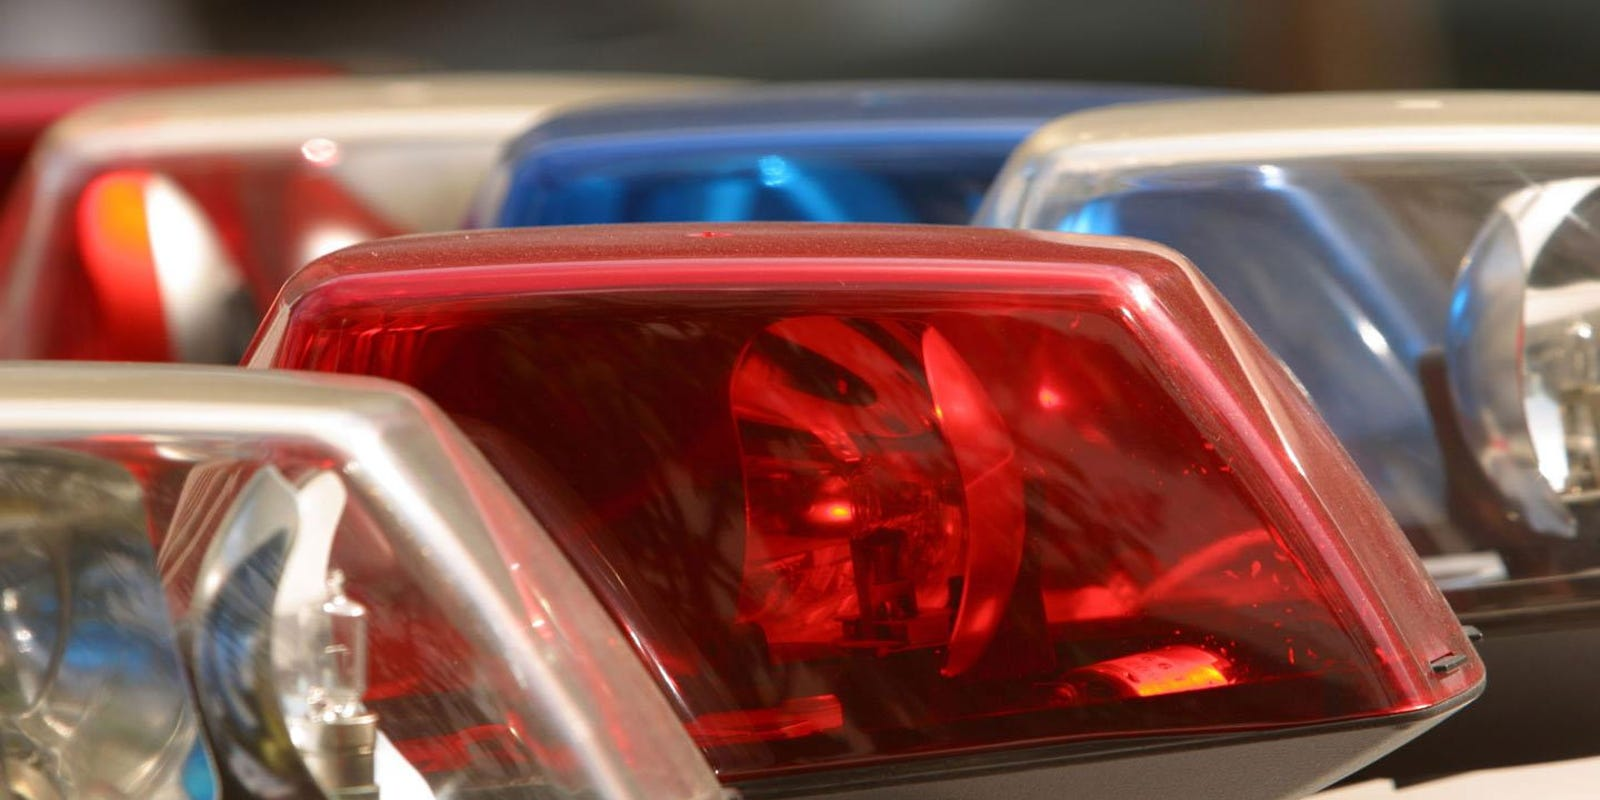 Police: Man's body found in West Des Moines ditch